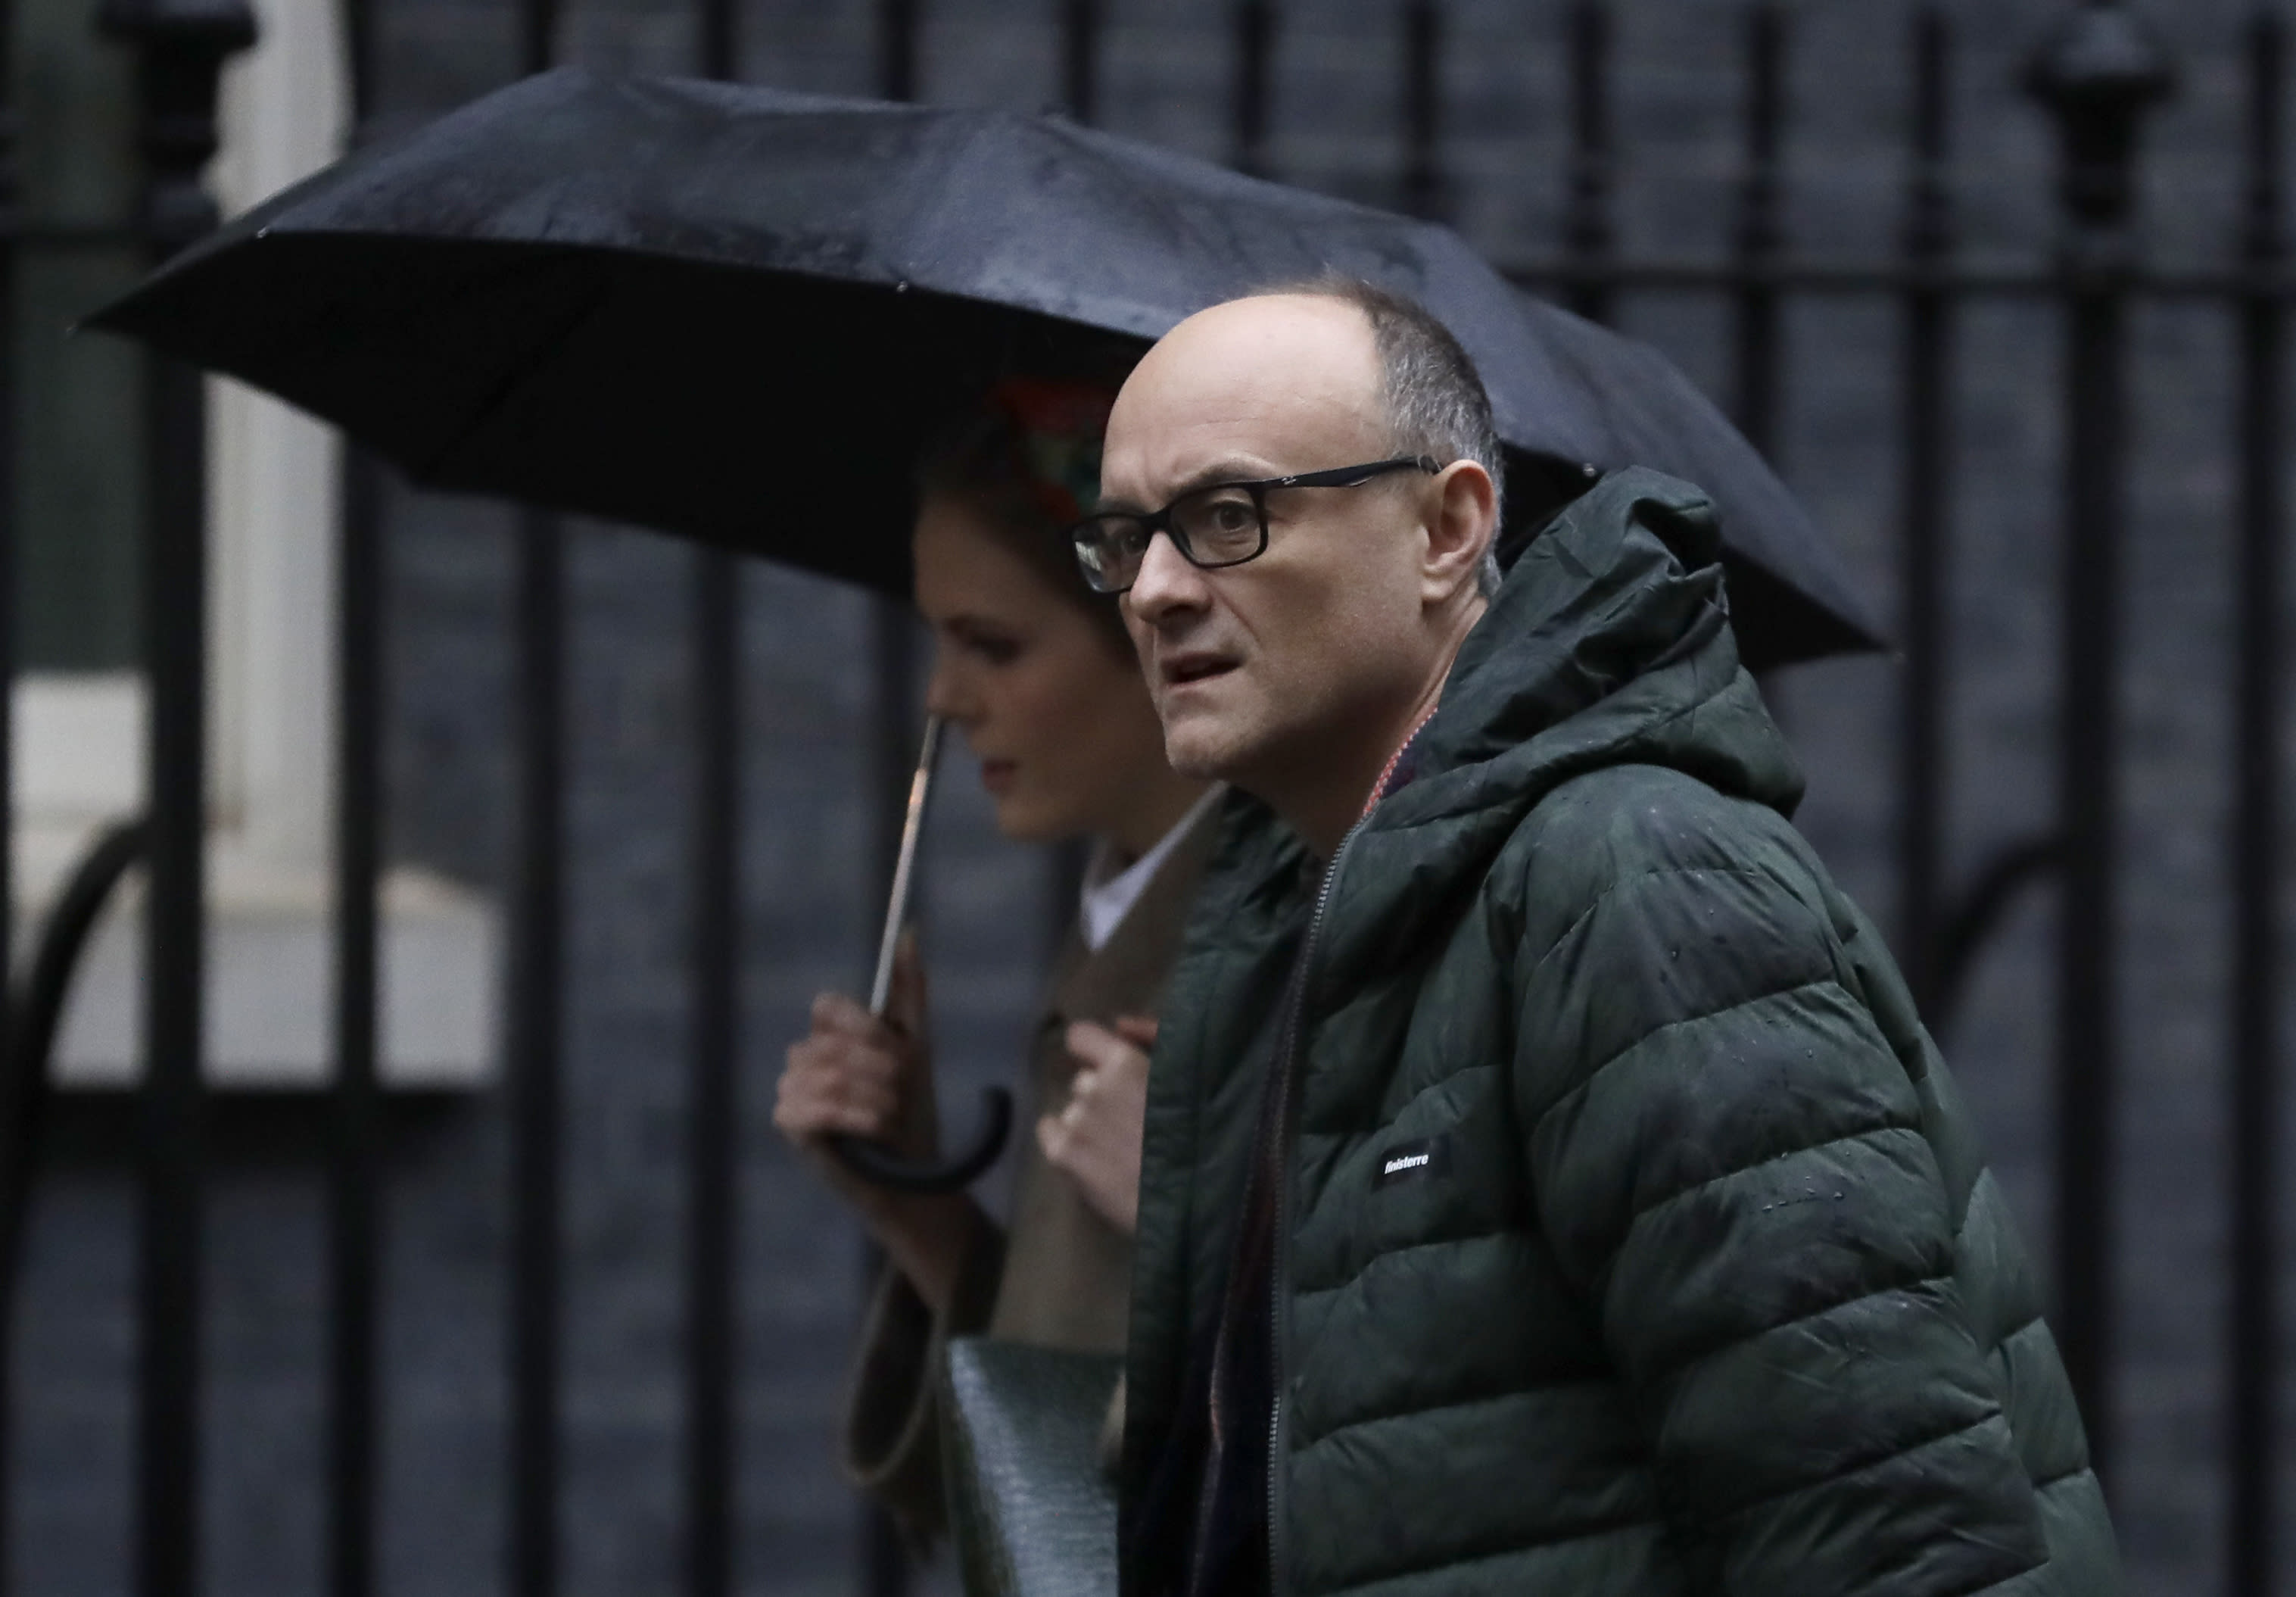 Dominic Cummings, political advisor to Britain's Prime Minister Boris Johnson, arrives at Downing Street in London, Friday, Dec. 20, 2019. (AP Photo/Kirsty Wigglesworth)